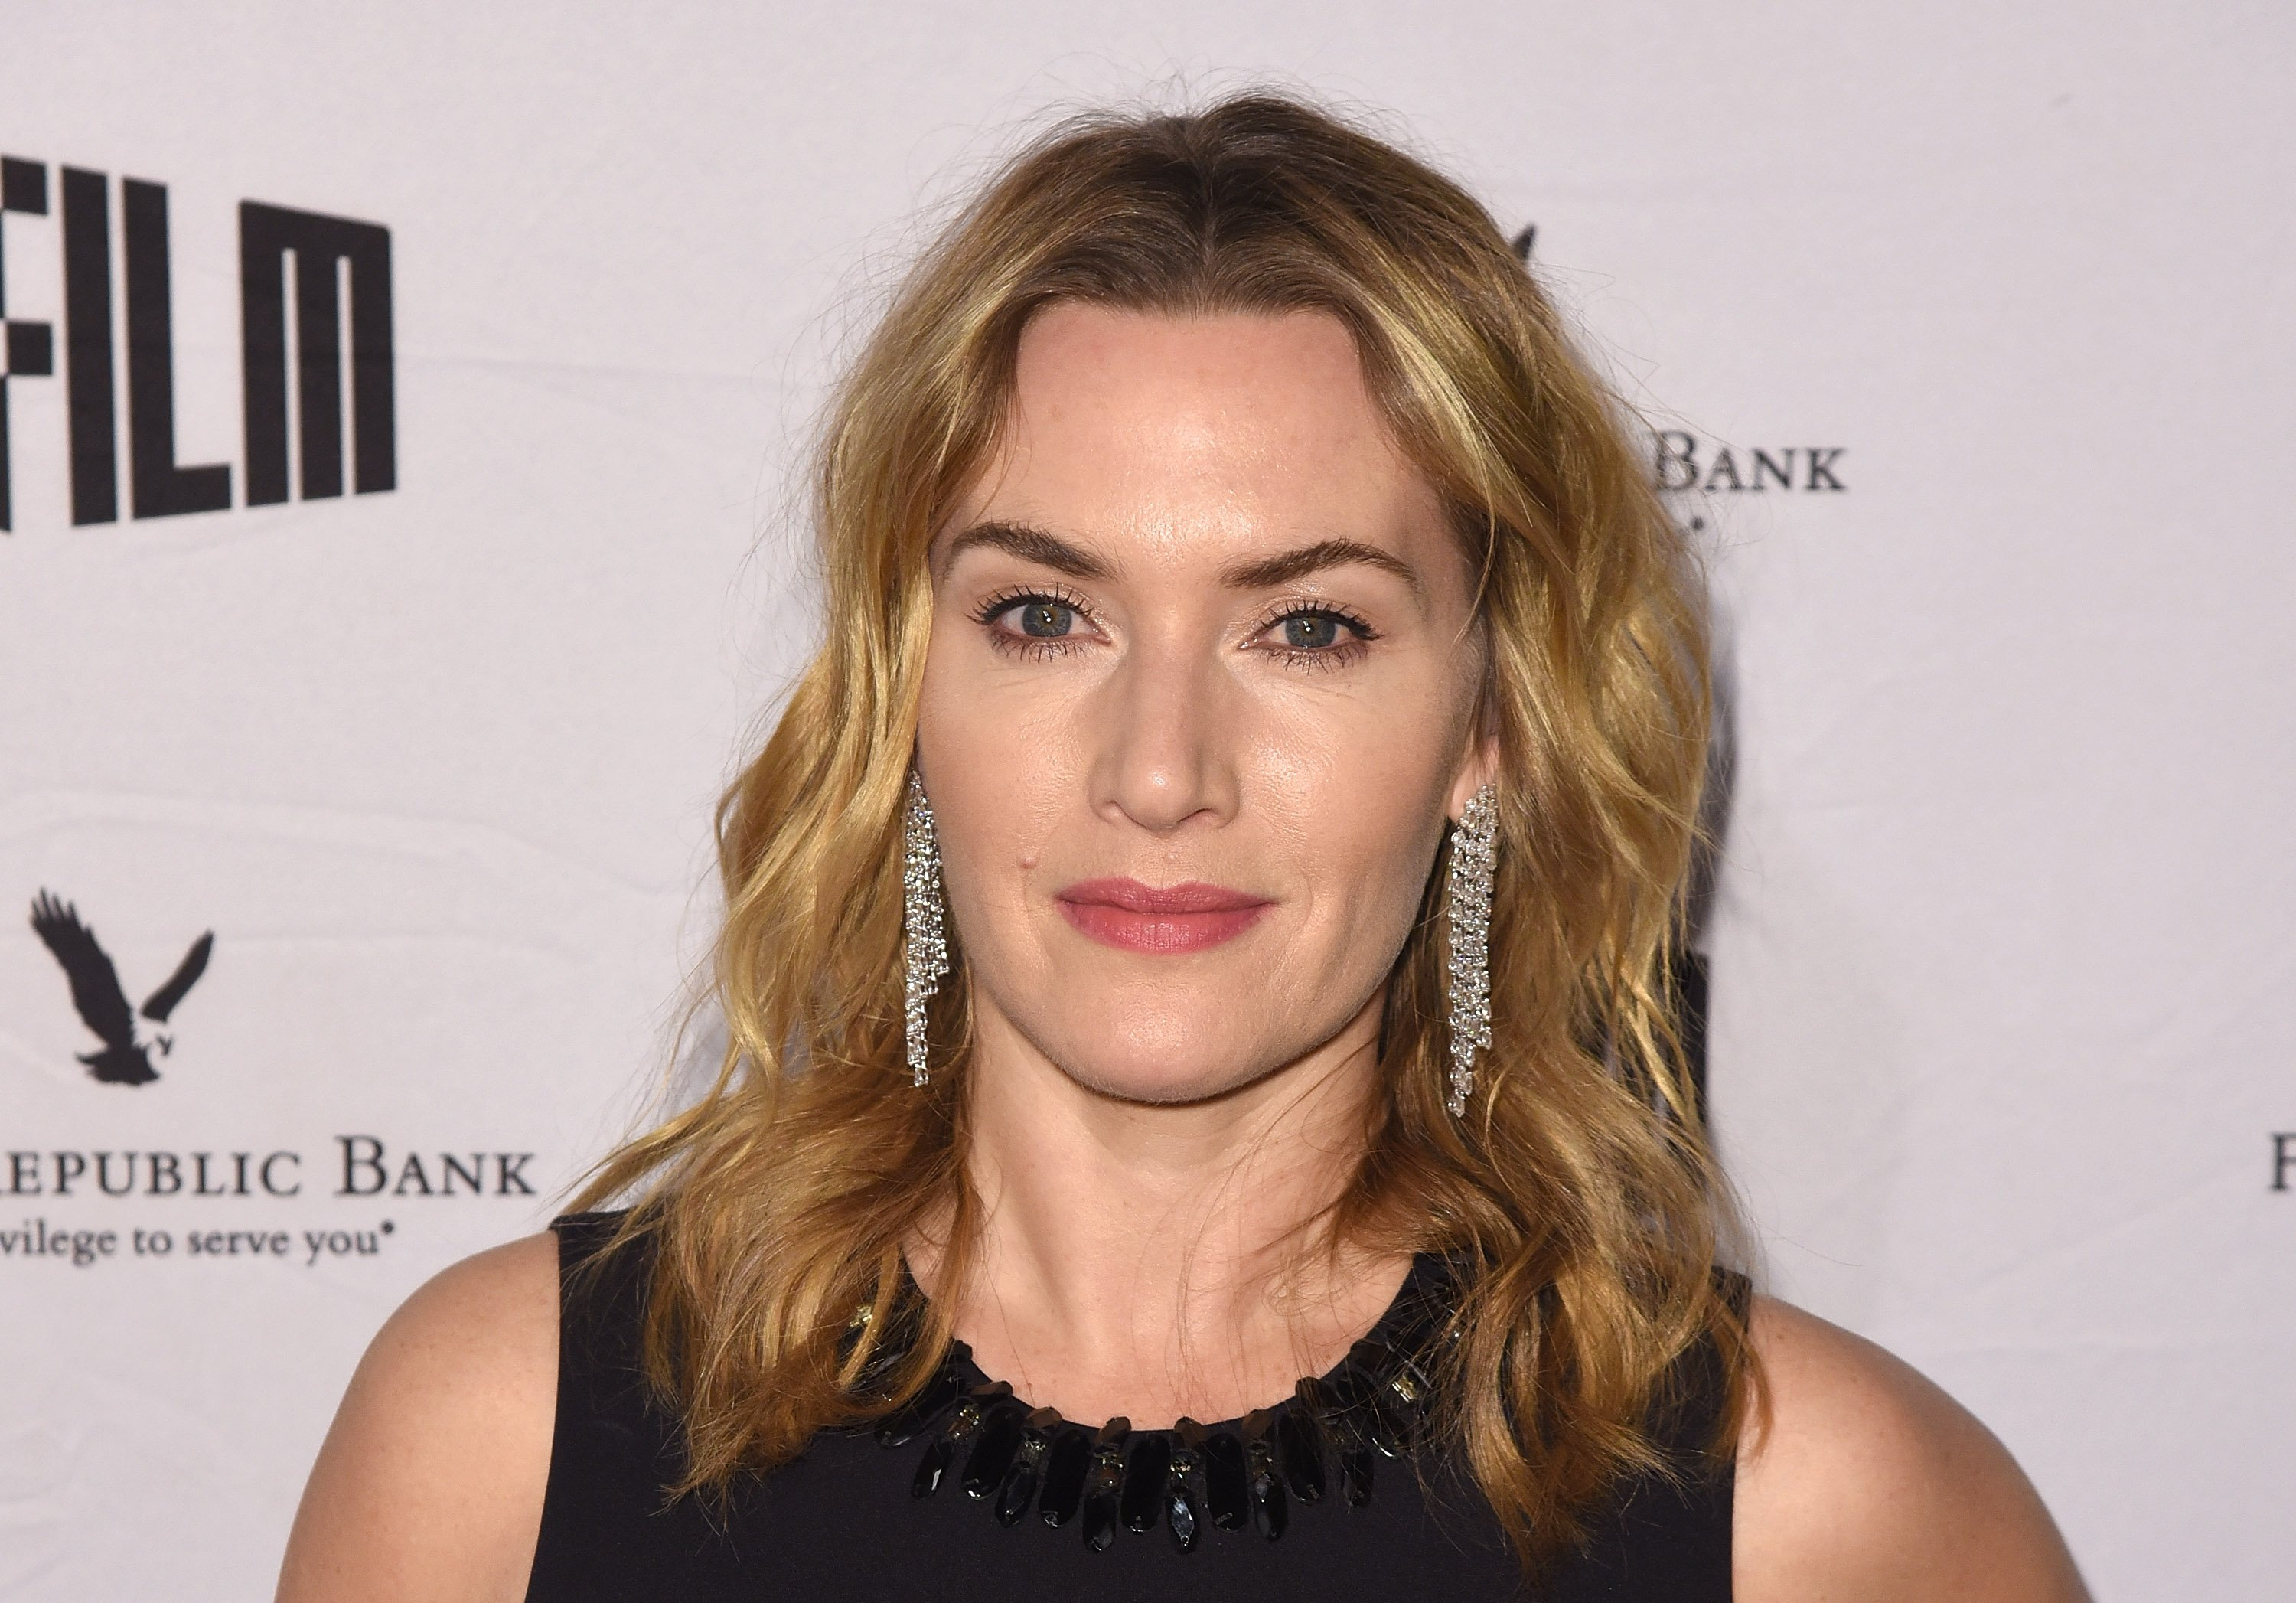 Kate Winslet attends SFFILM's 60th Anniversary Awards Night at Palace of Fine Arts Theatre on December 5, 2017 in San Francisco, California. | Photo by C Flanigan/Getty Images